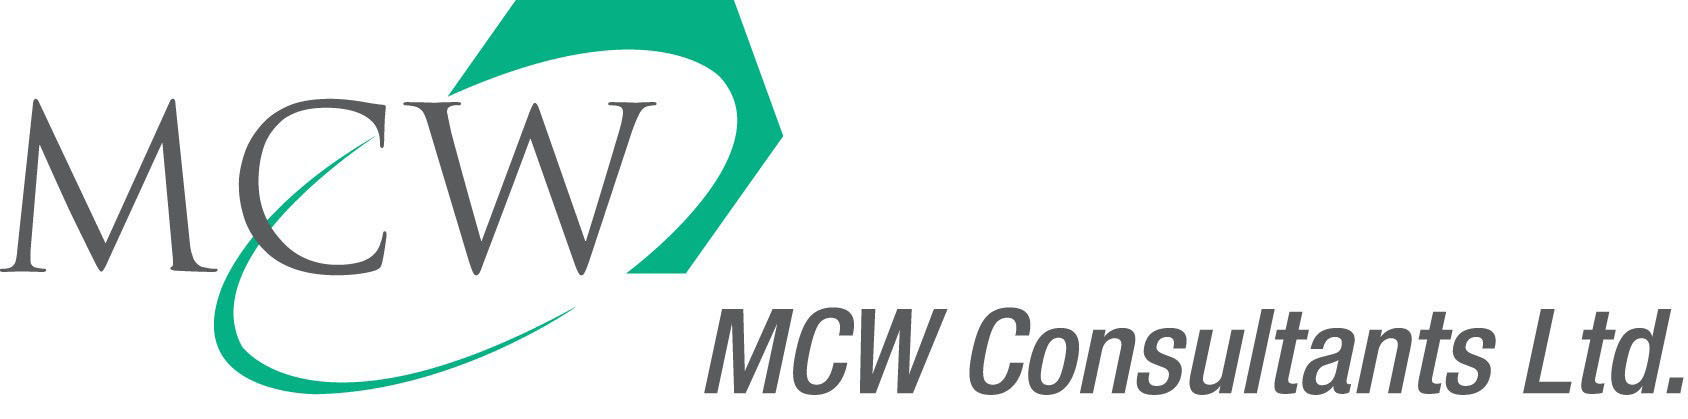 MCW consulting.jpg